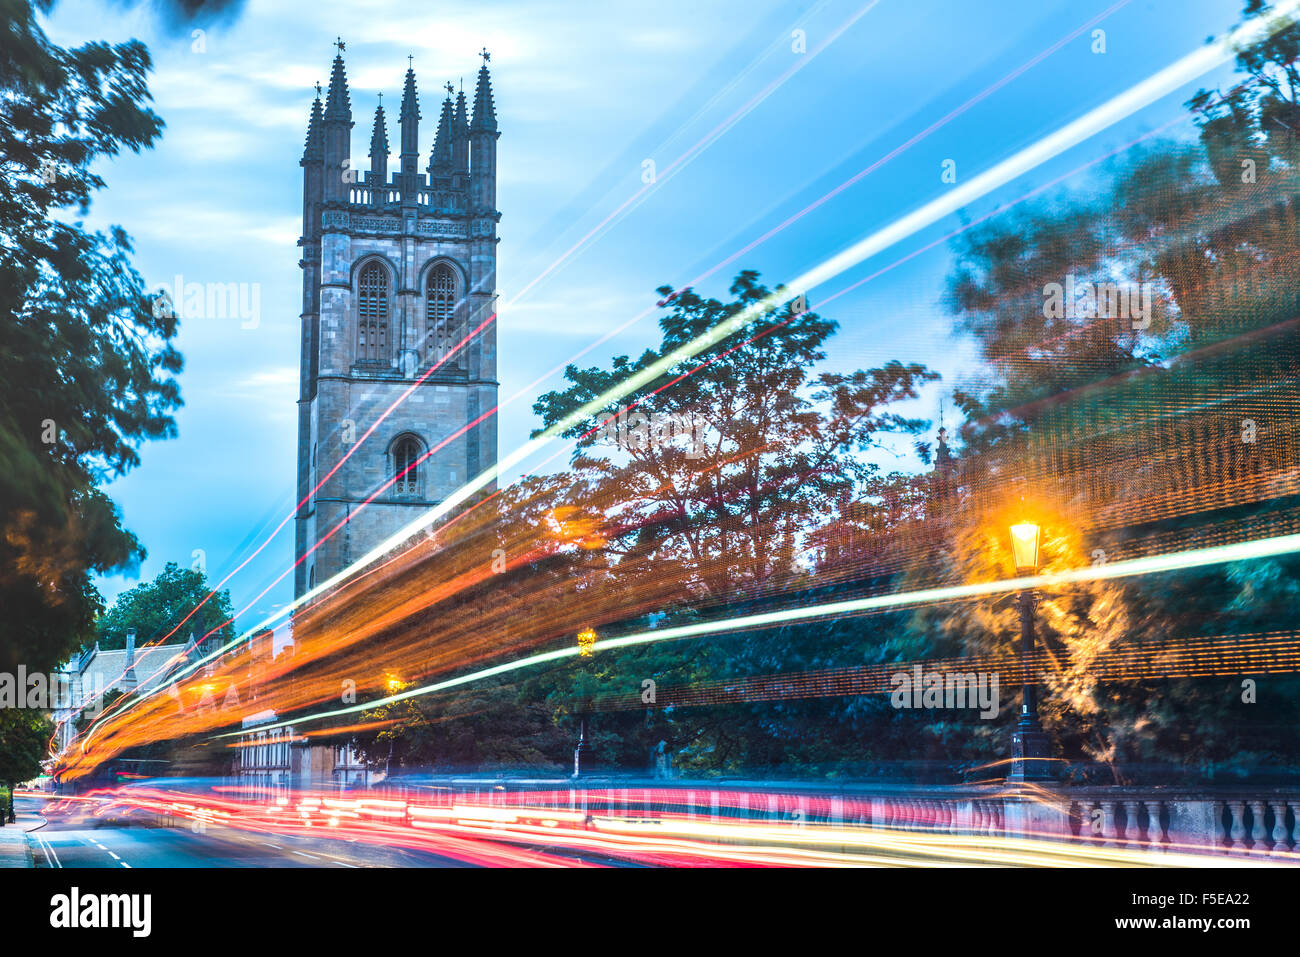 Magdalen College, Oxford, Oxfordshire, England, United Kingdom, Europe - Stock Image